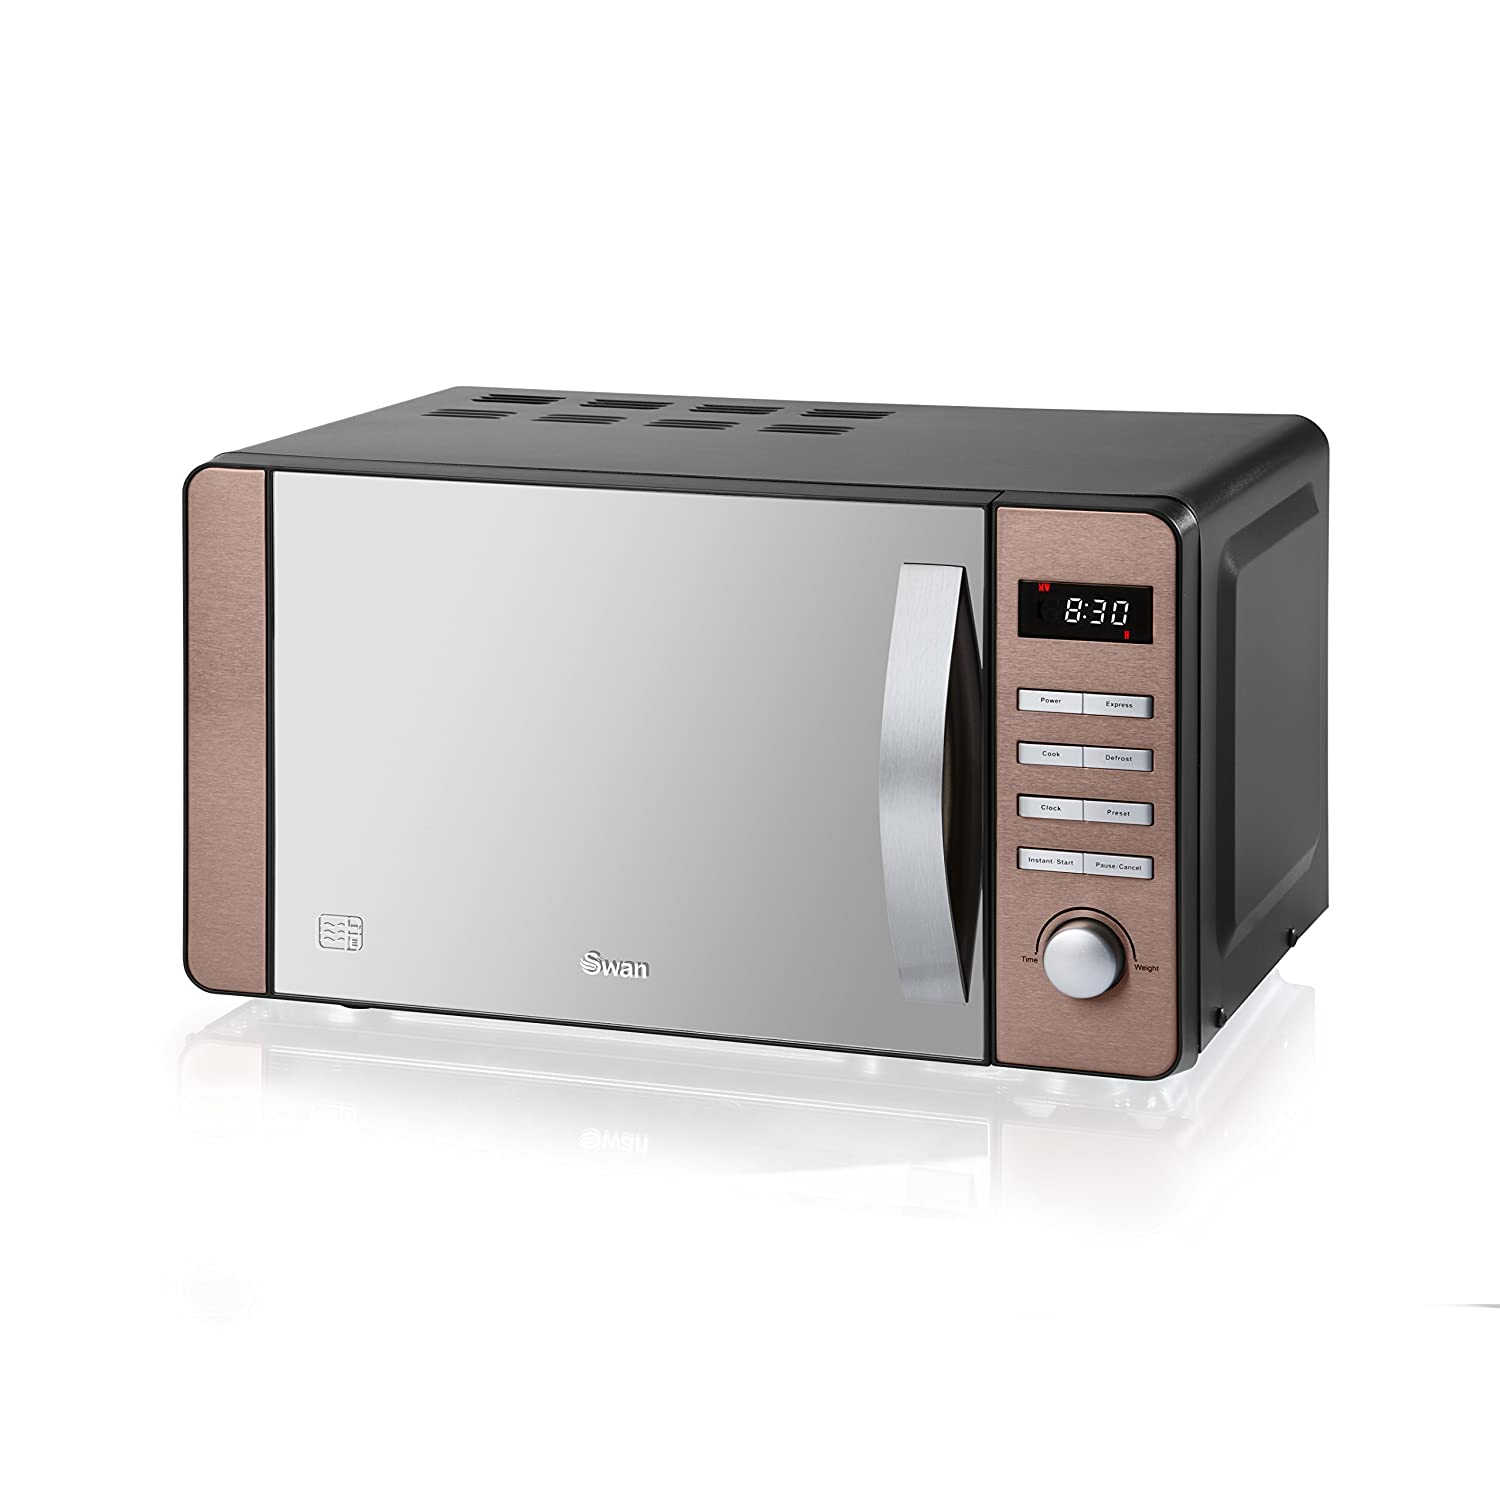 Aldi home sale catalogue special buys stirling 34l microwave oven - Aldi Home Sale Catalogue Special Buys Stirling 34l Microwave Oven 21